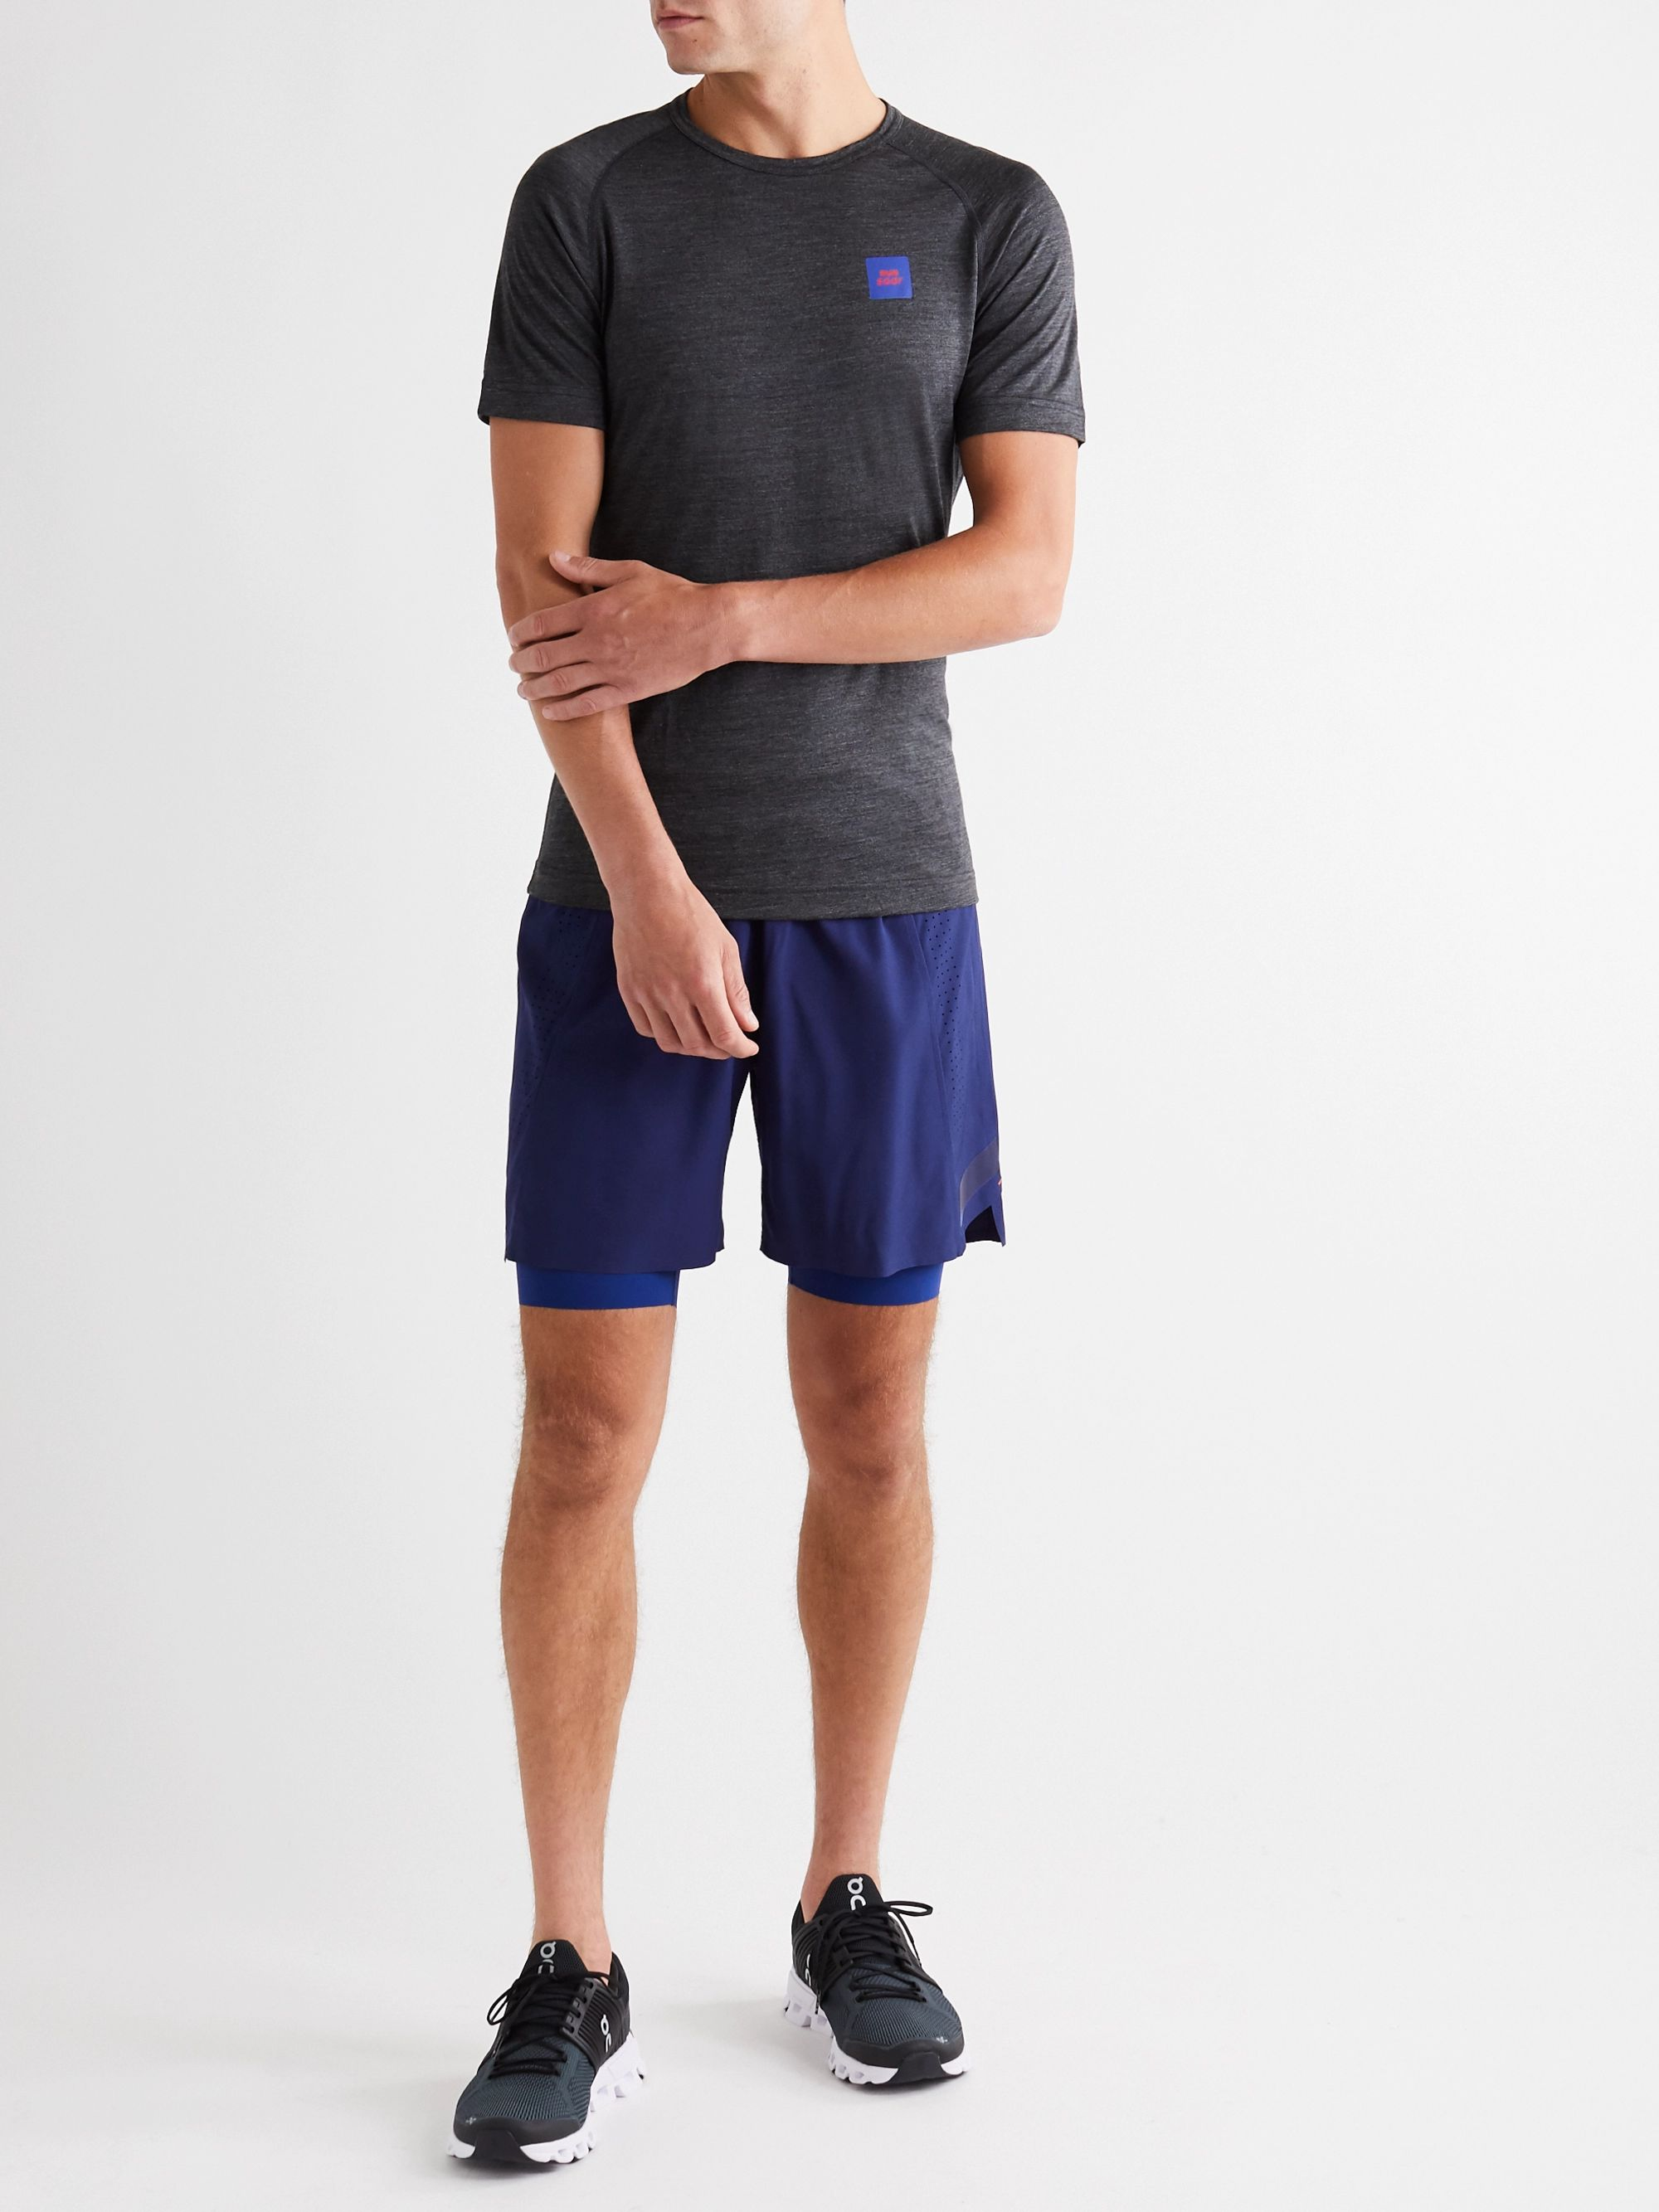 Soar Running Three Season 4.0 Layered Shell Shorts